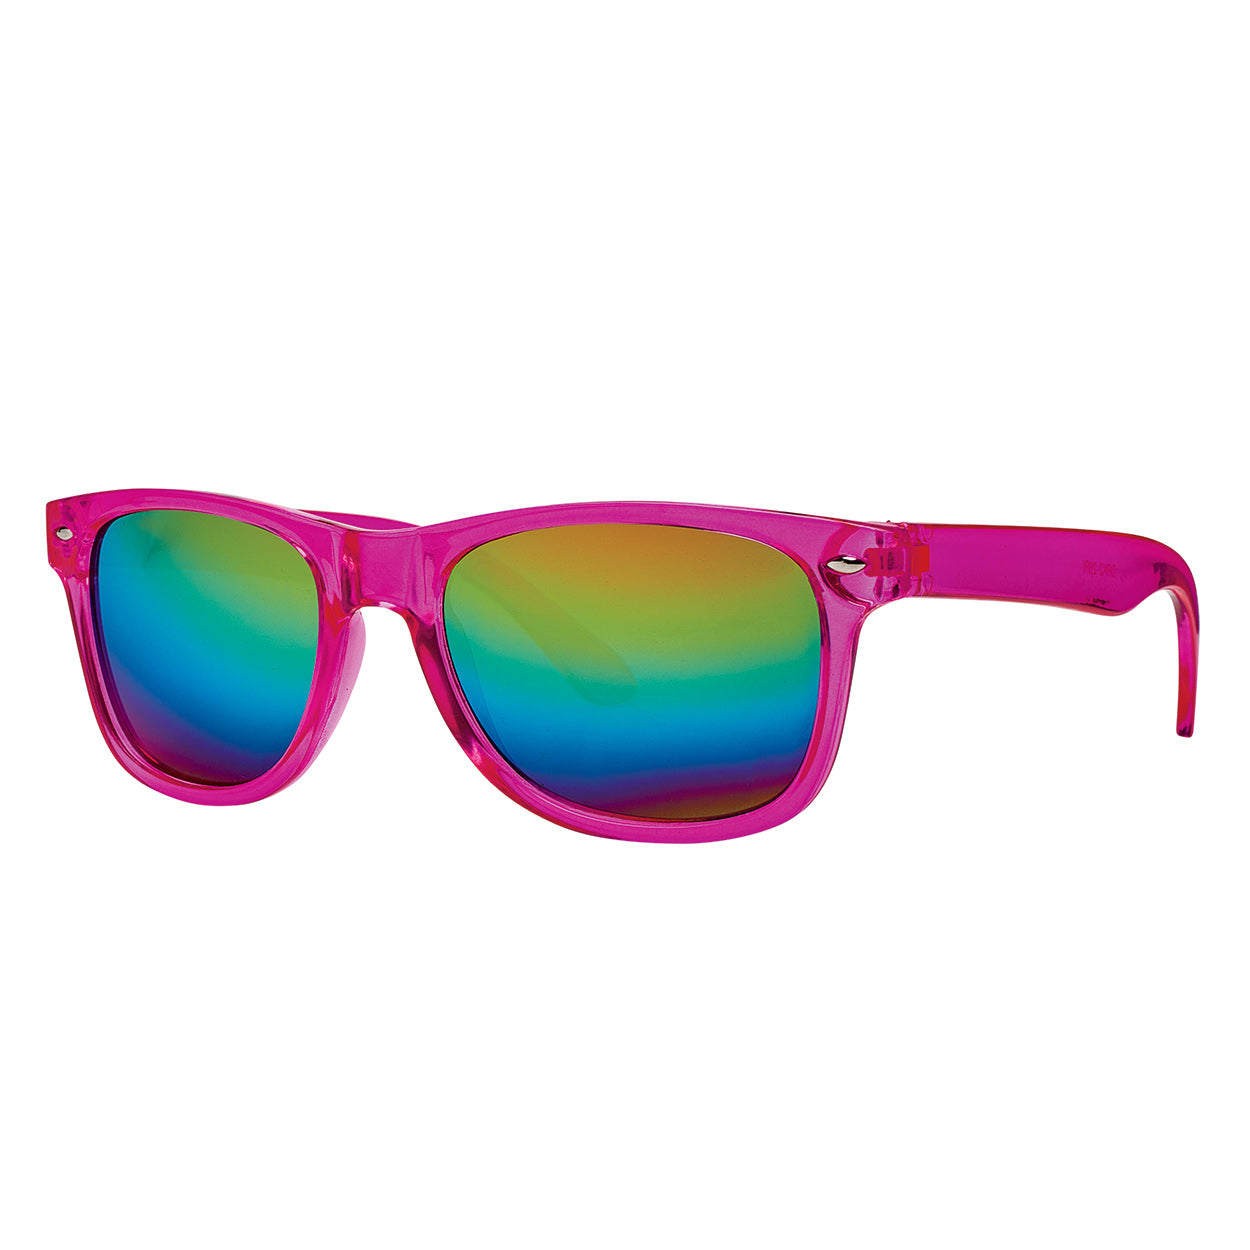 Kids Sunglasses Uv 400 Girls 3 8 Pink Wayferer Rainbow Mirrored Glasses Sunpoplife